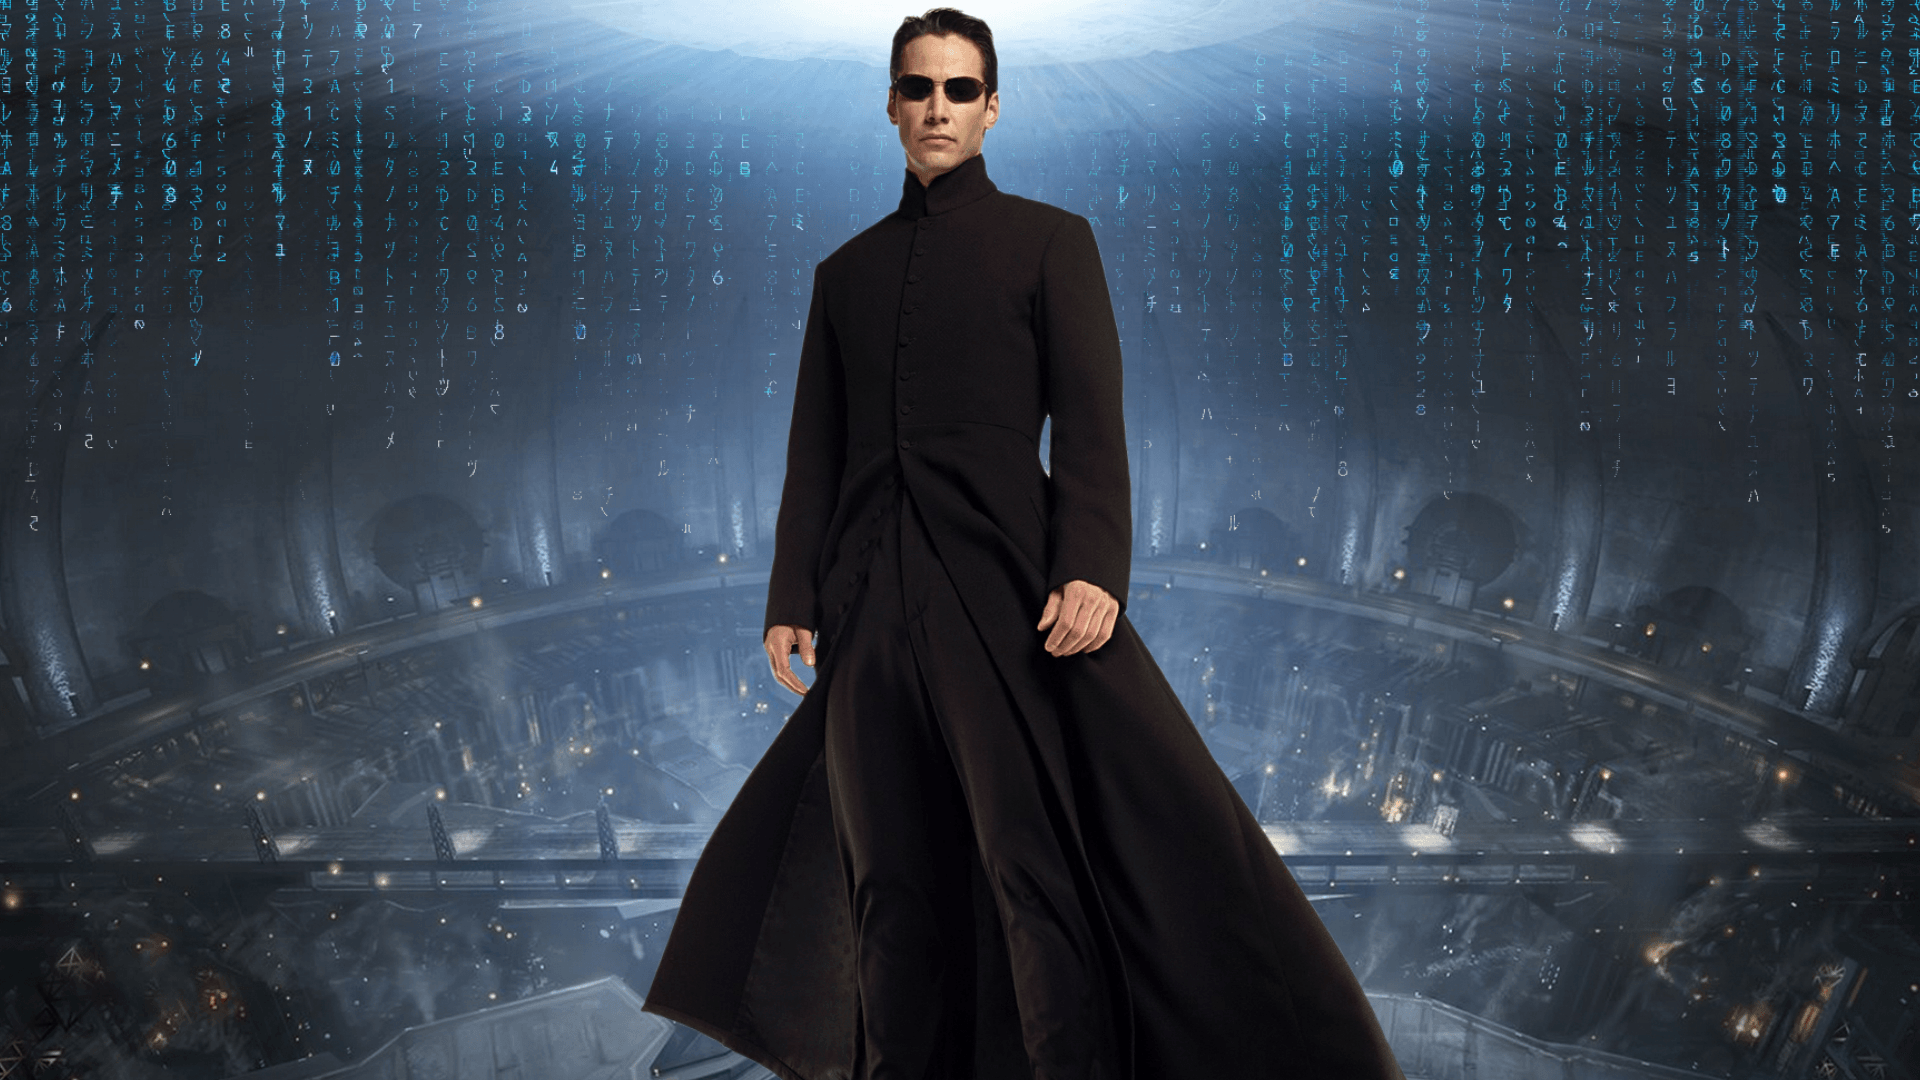 Keanu Reeves The Matrix